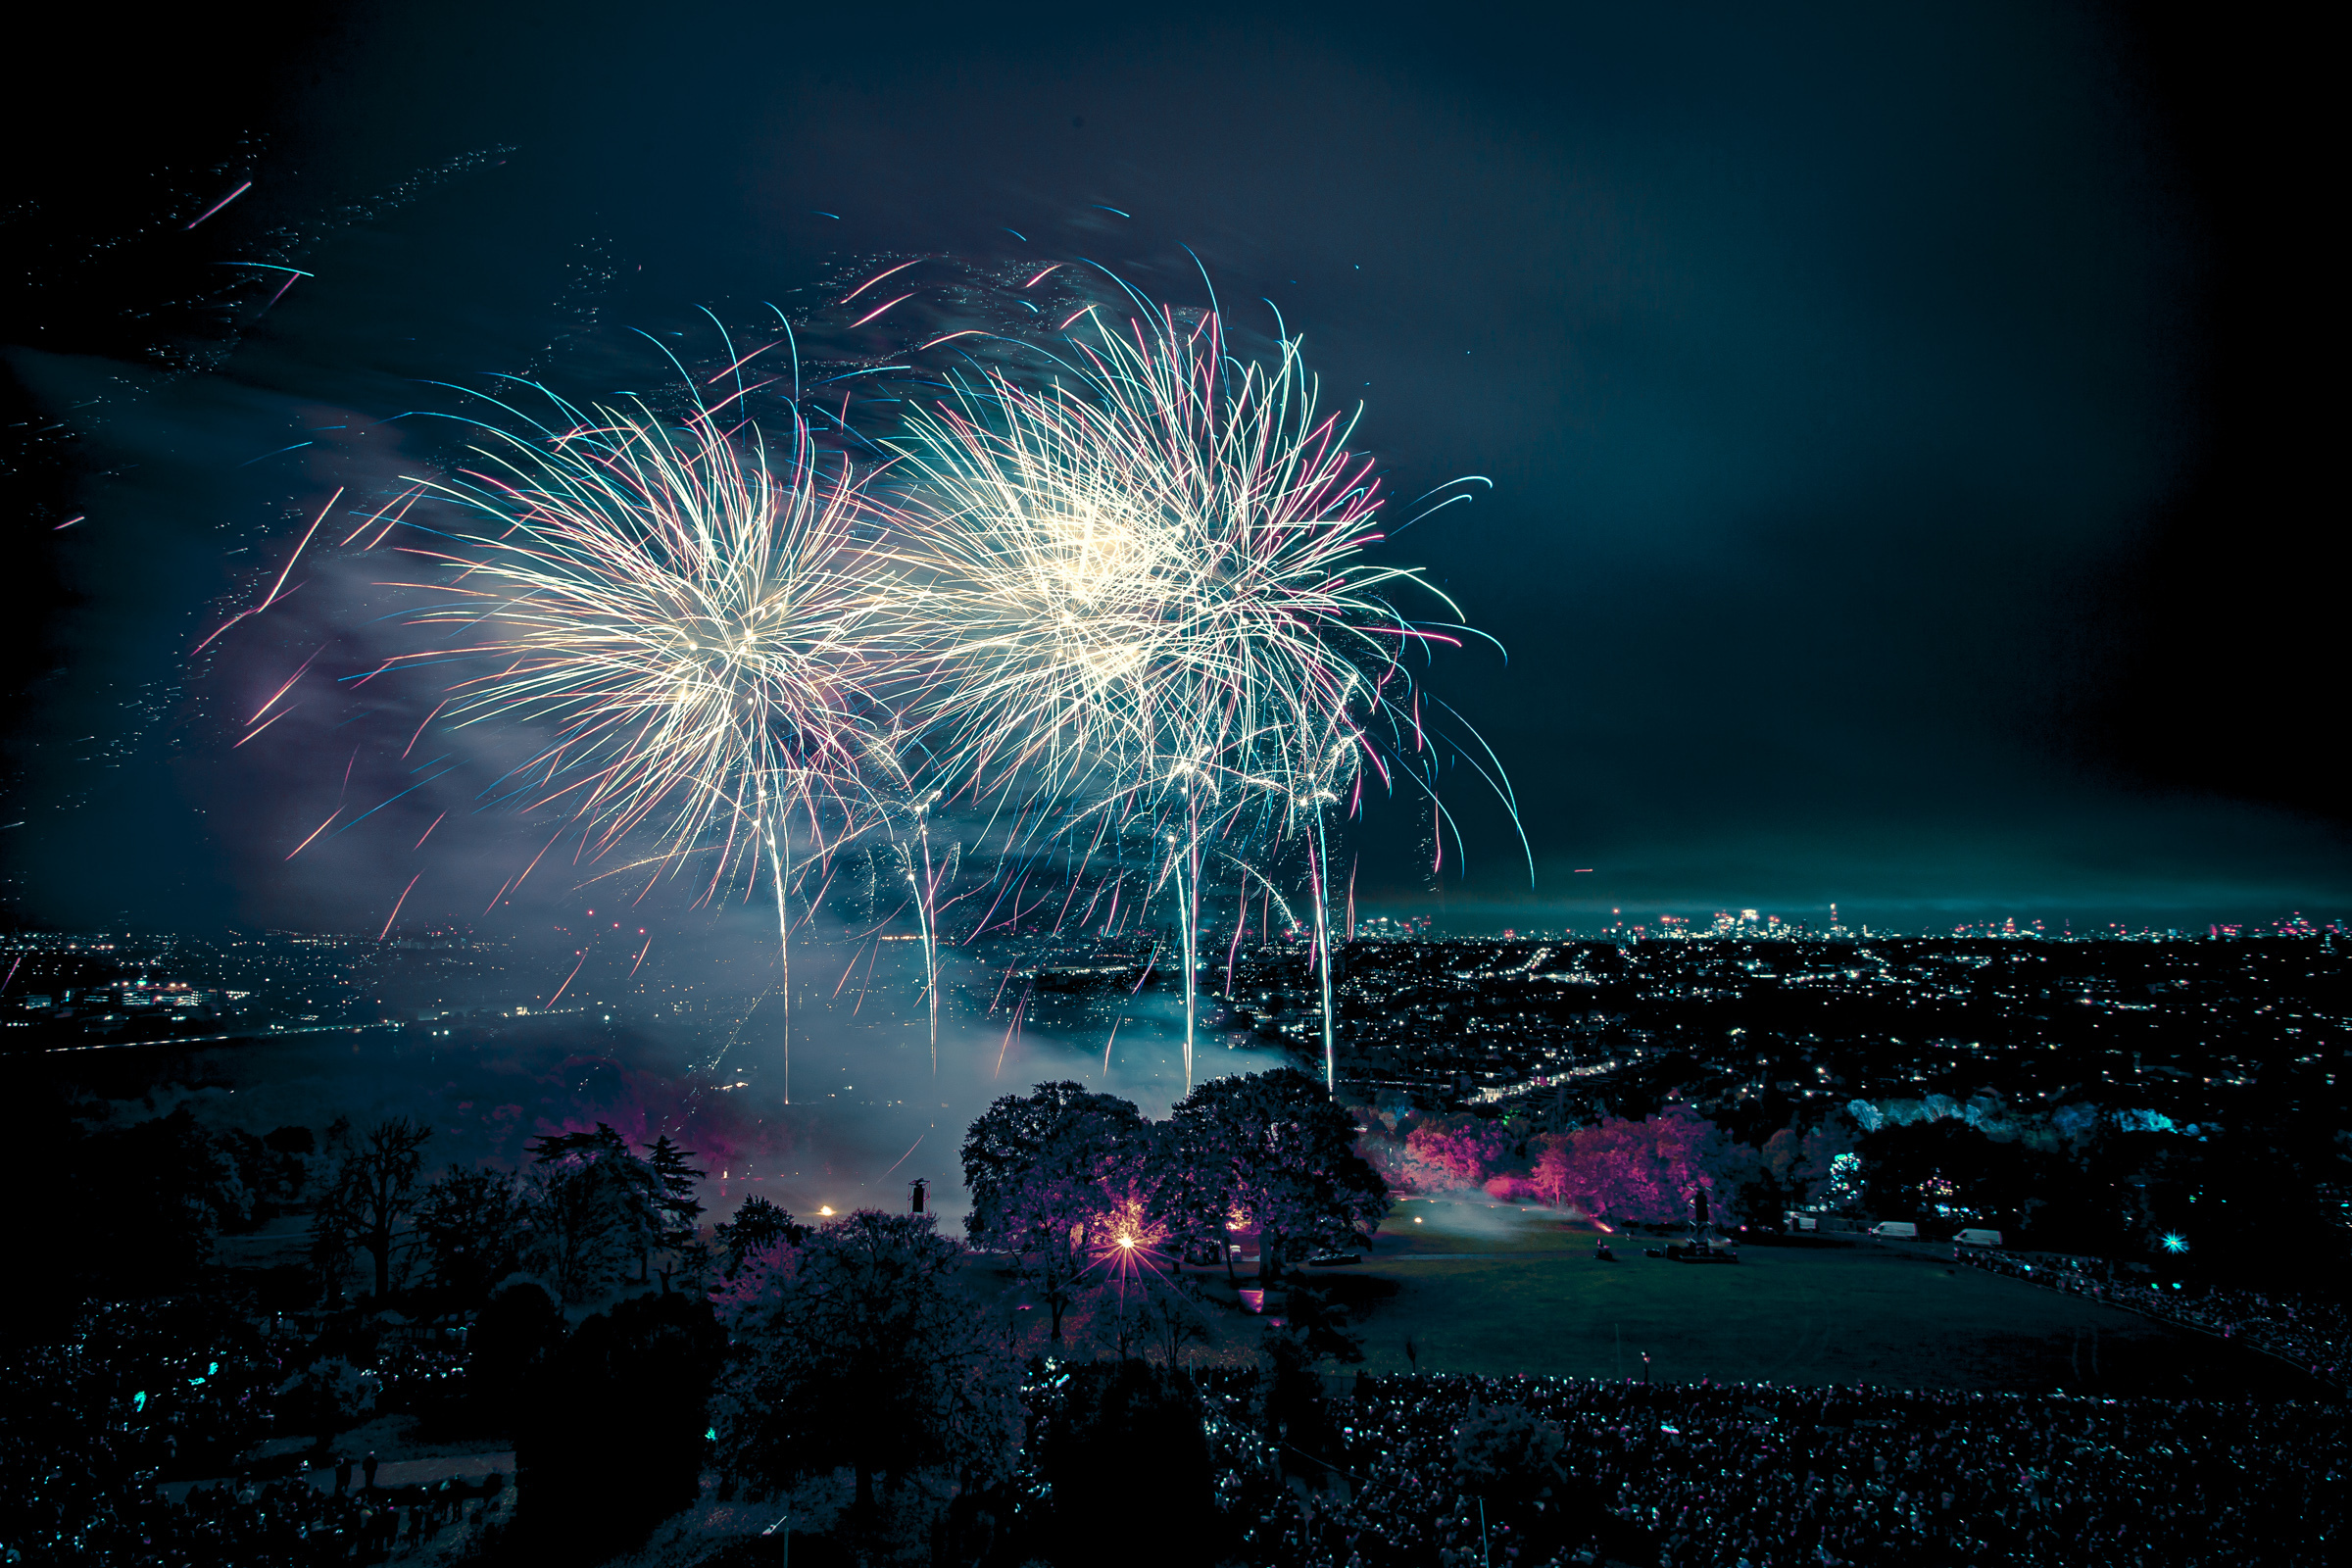 Fireworks Night at Alexandra Palace is going all out this year